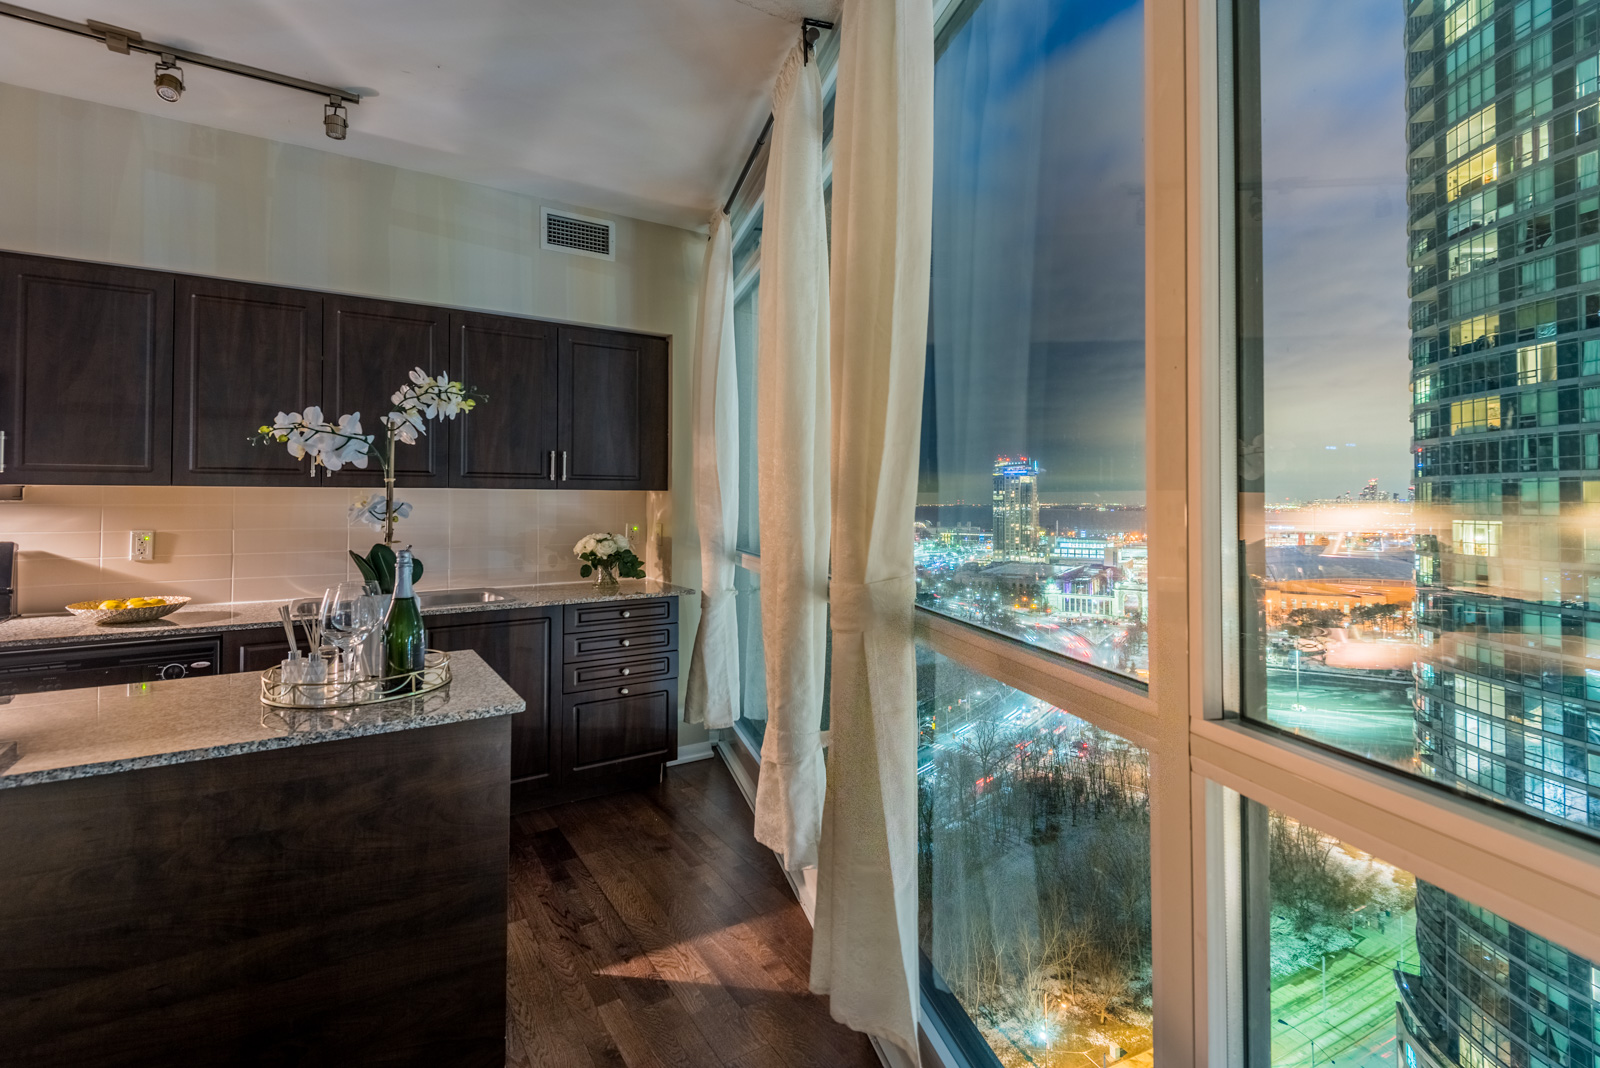 Night view of Fort York Toronto from kitchen of 215 Fort York Blvd Unit 2310.